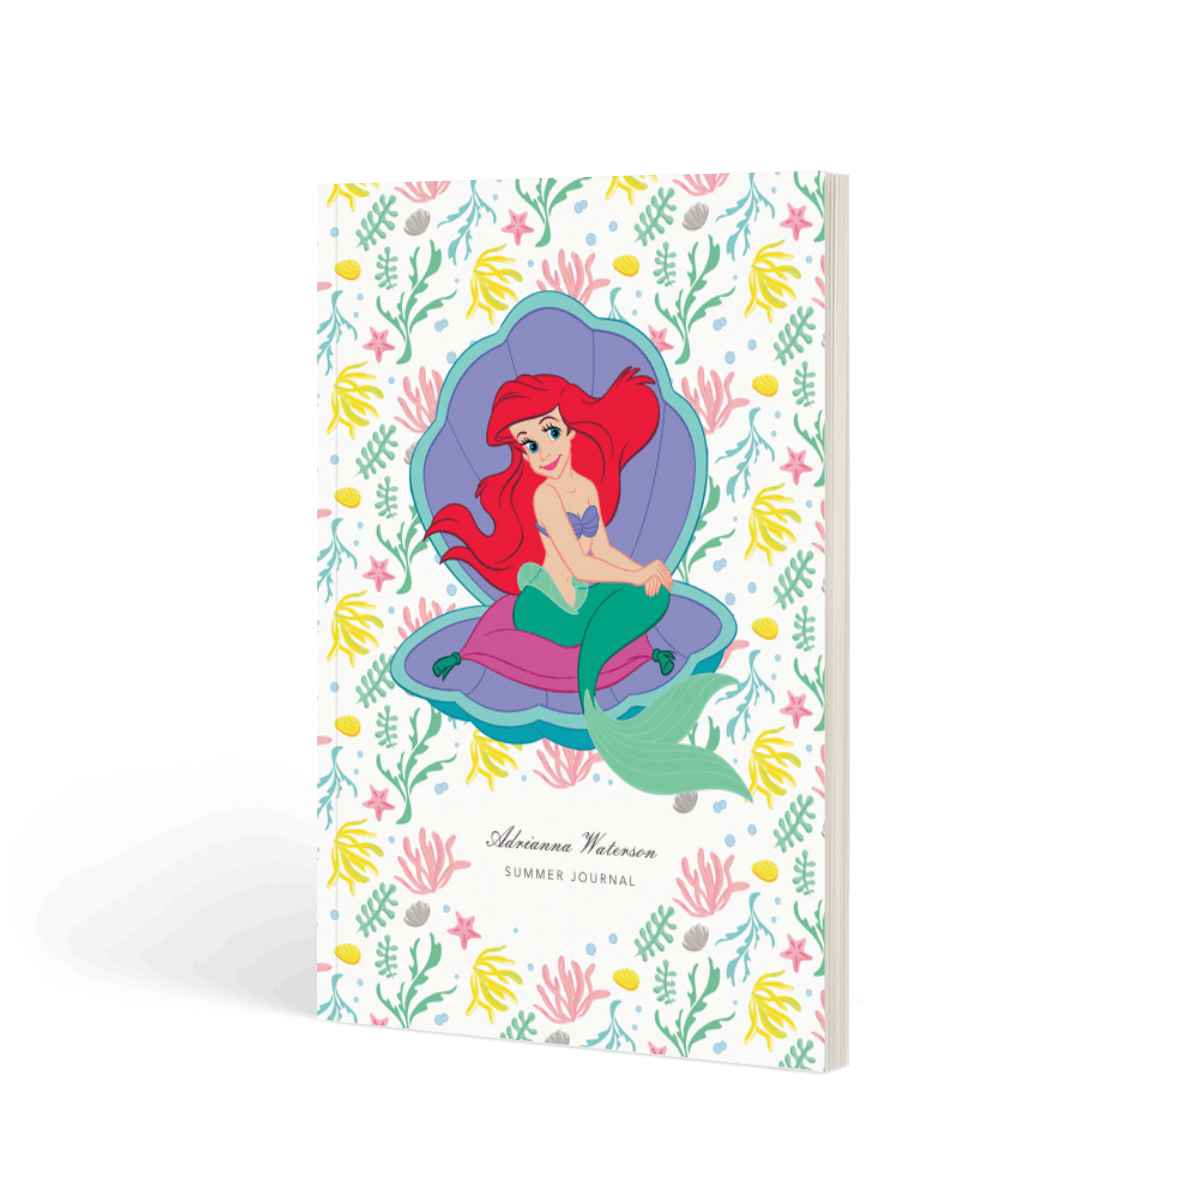 Https%3a%2f%2fwww.papier.com%2fproduct image%2f54120%2f6%2fthe little mermaid 13018 vorderseite 1570129021.png?ixlib=rb 1.1